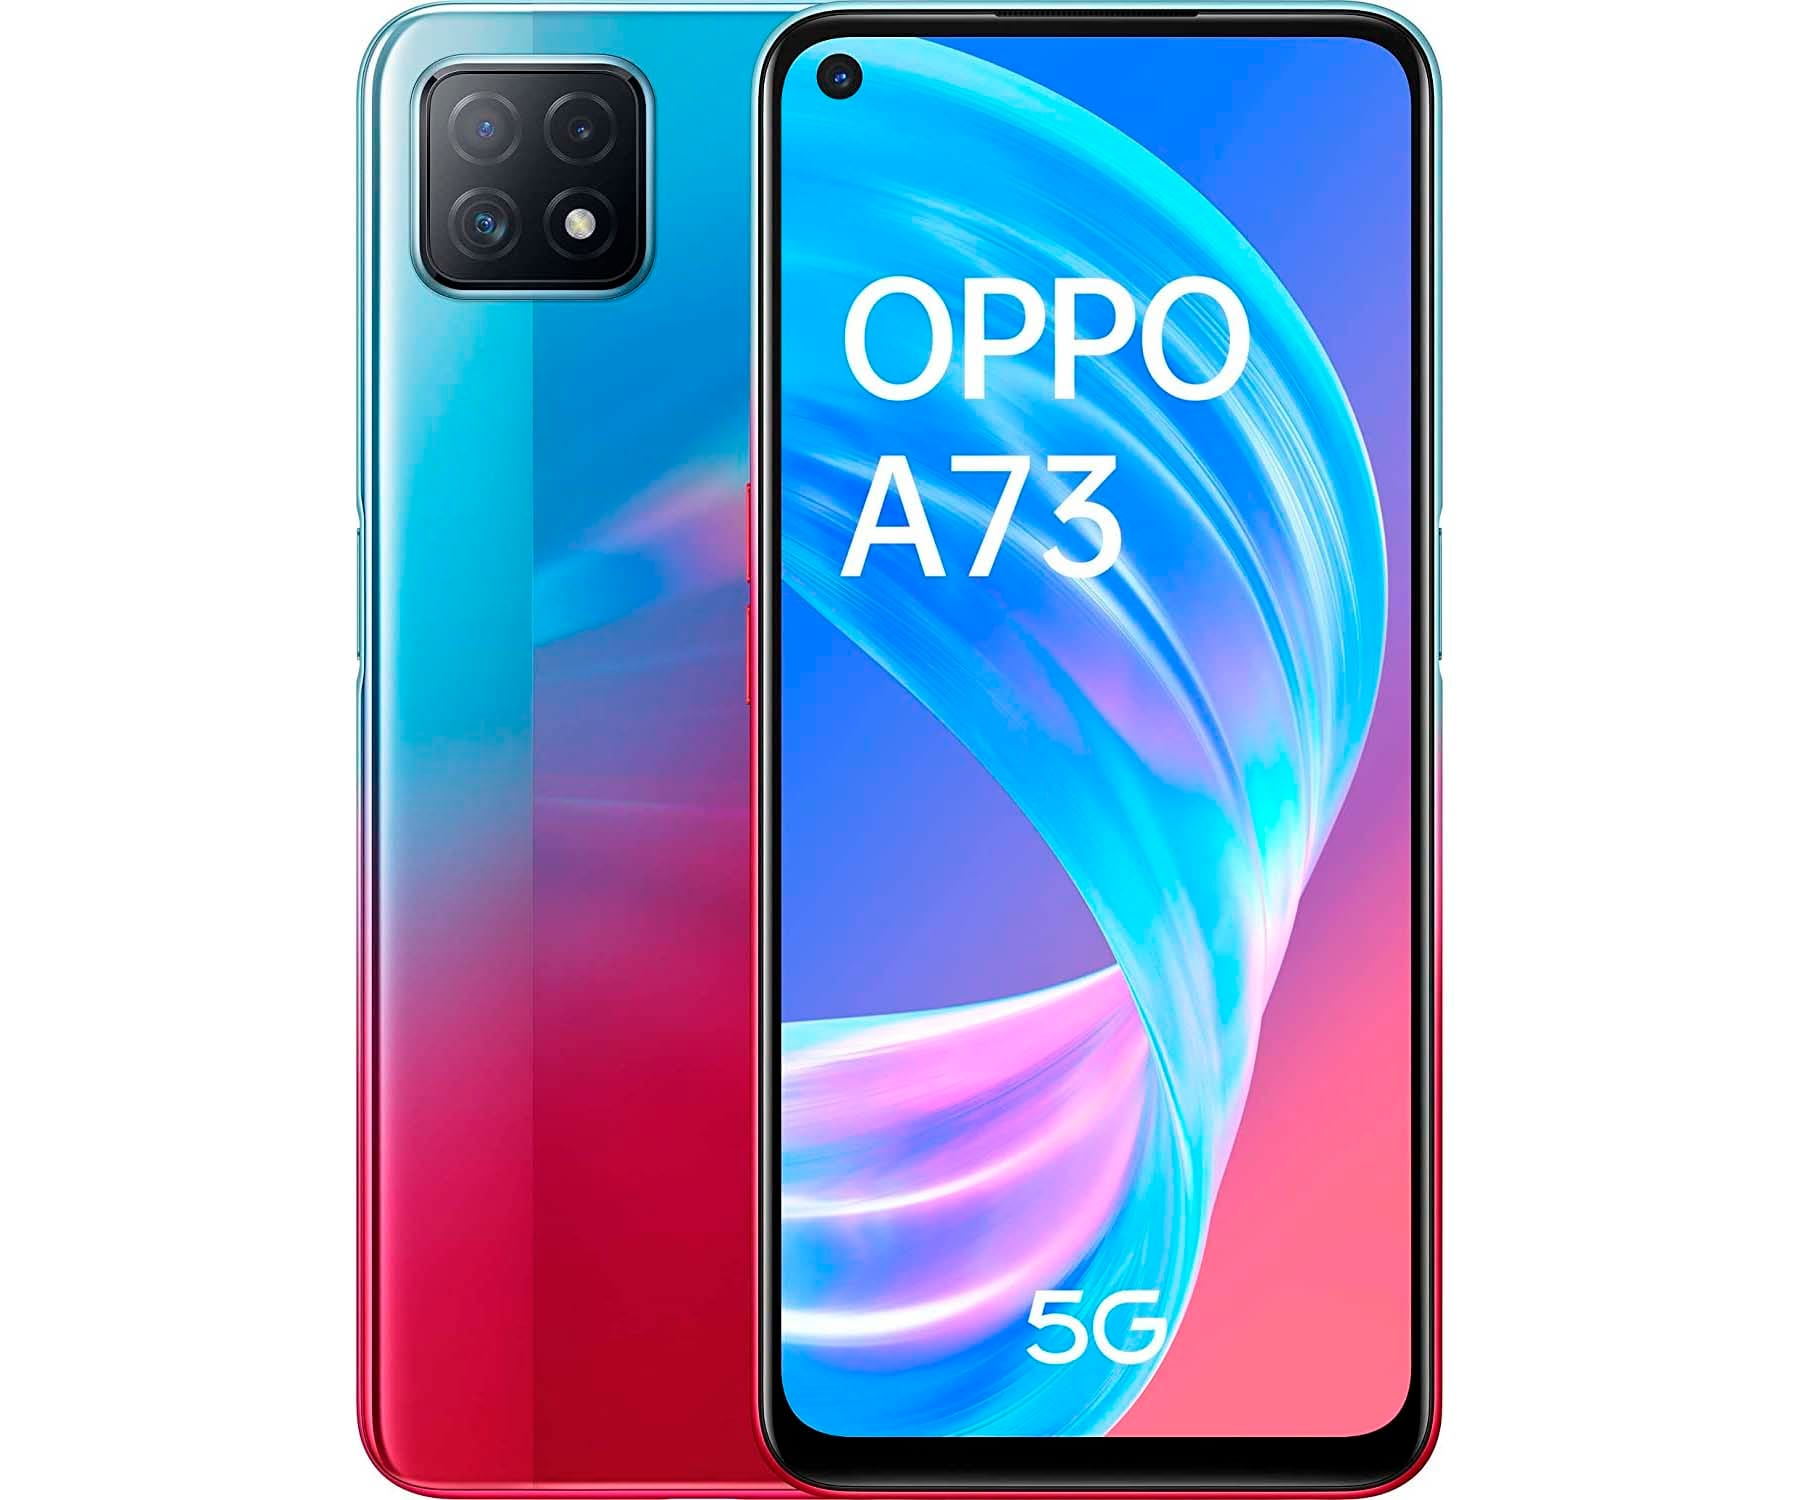 OPPO A73 NEON MÓVIL 5G DUAL SIM 6.5'' 90Hz FHD+ OCTACORE 128GB 8GB RAM TRICAM 16MP SELFIES 8MP